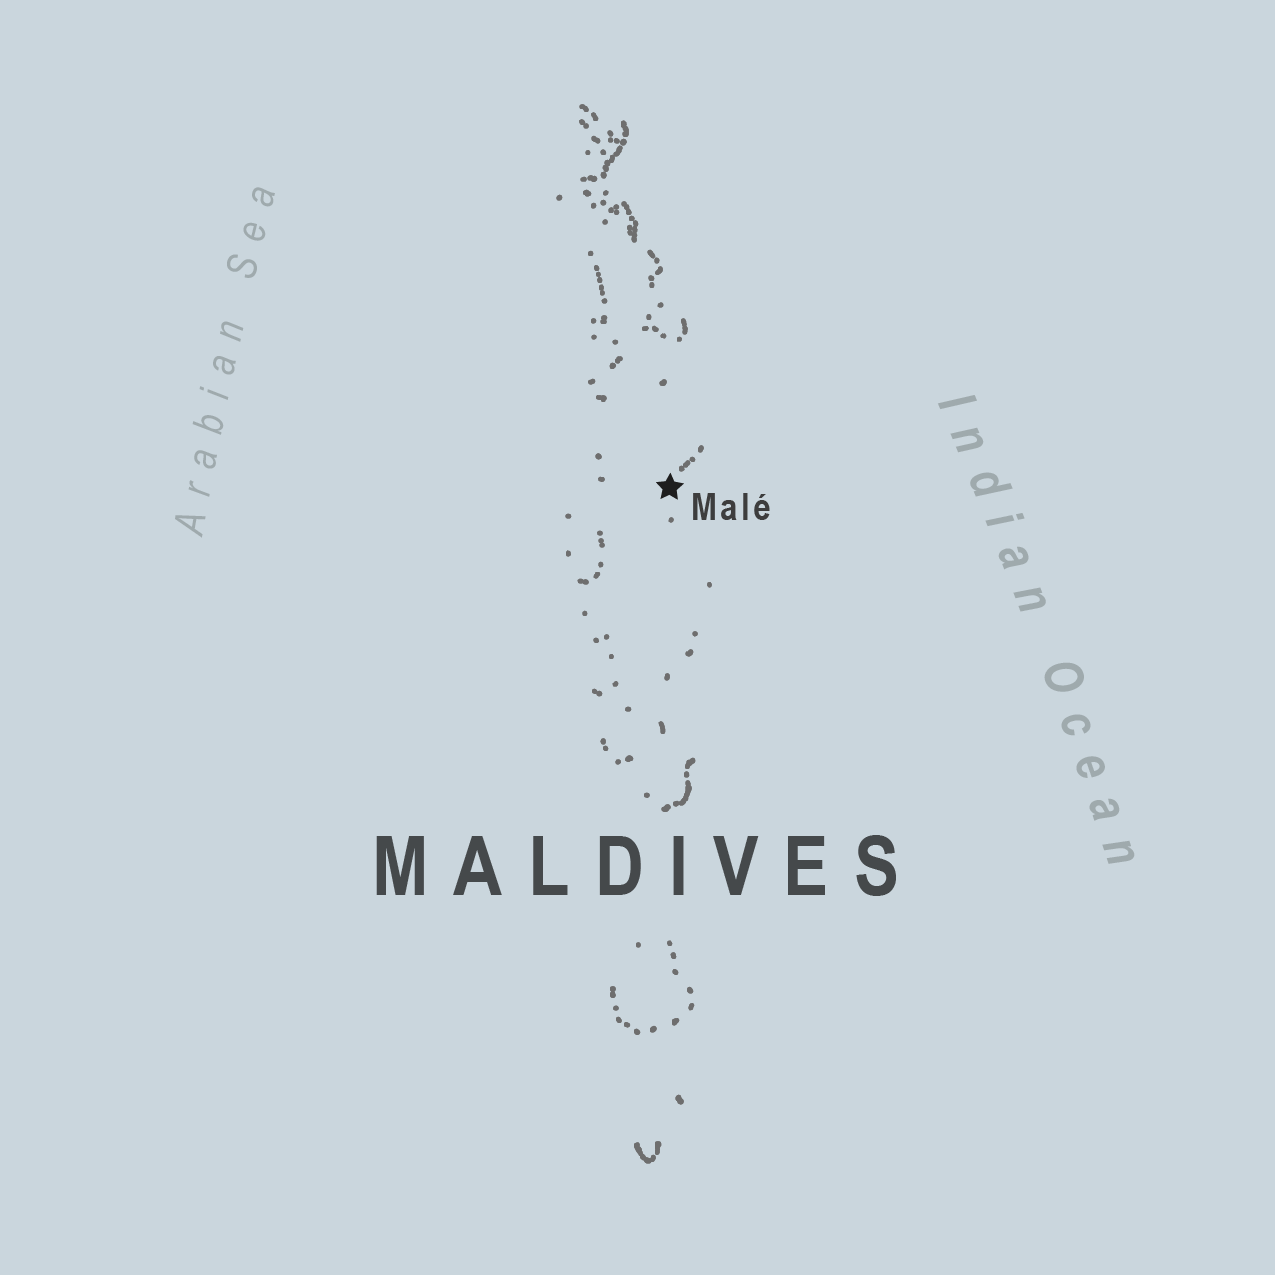 Health Information For Travelers To Maldives